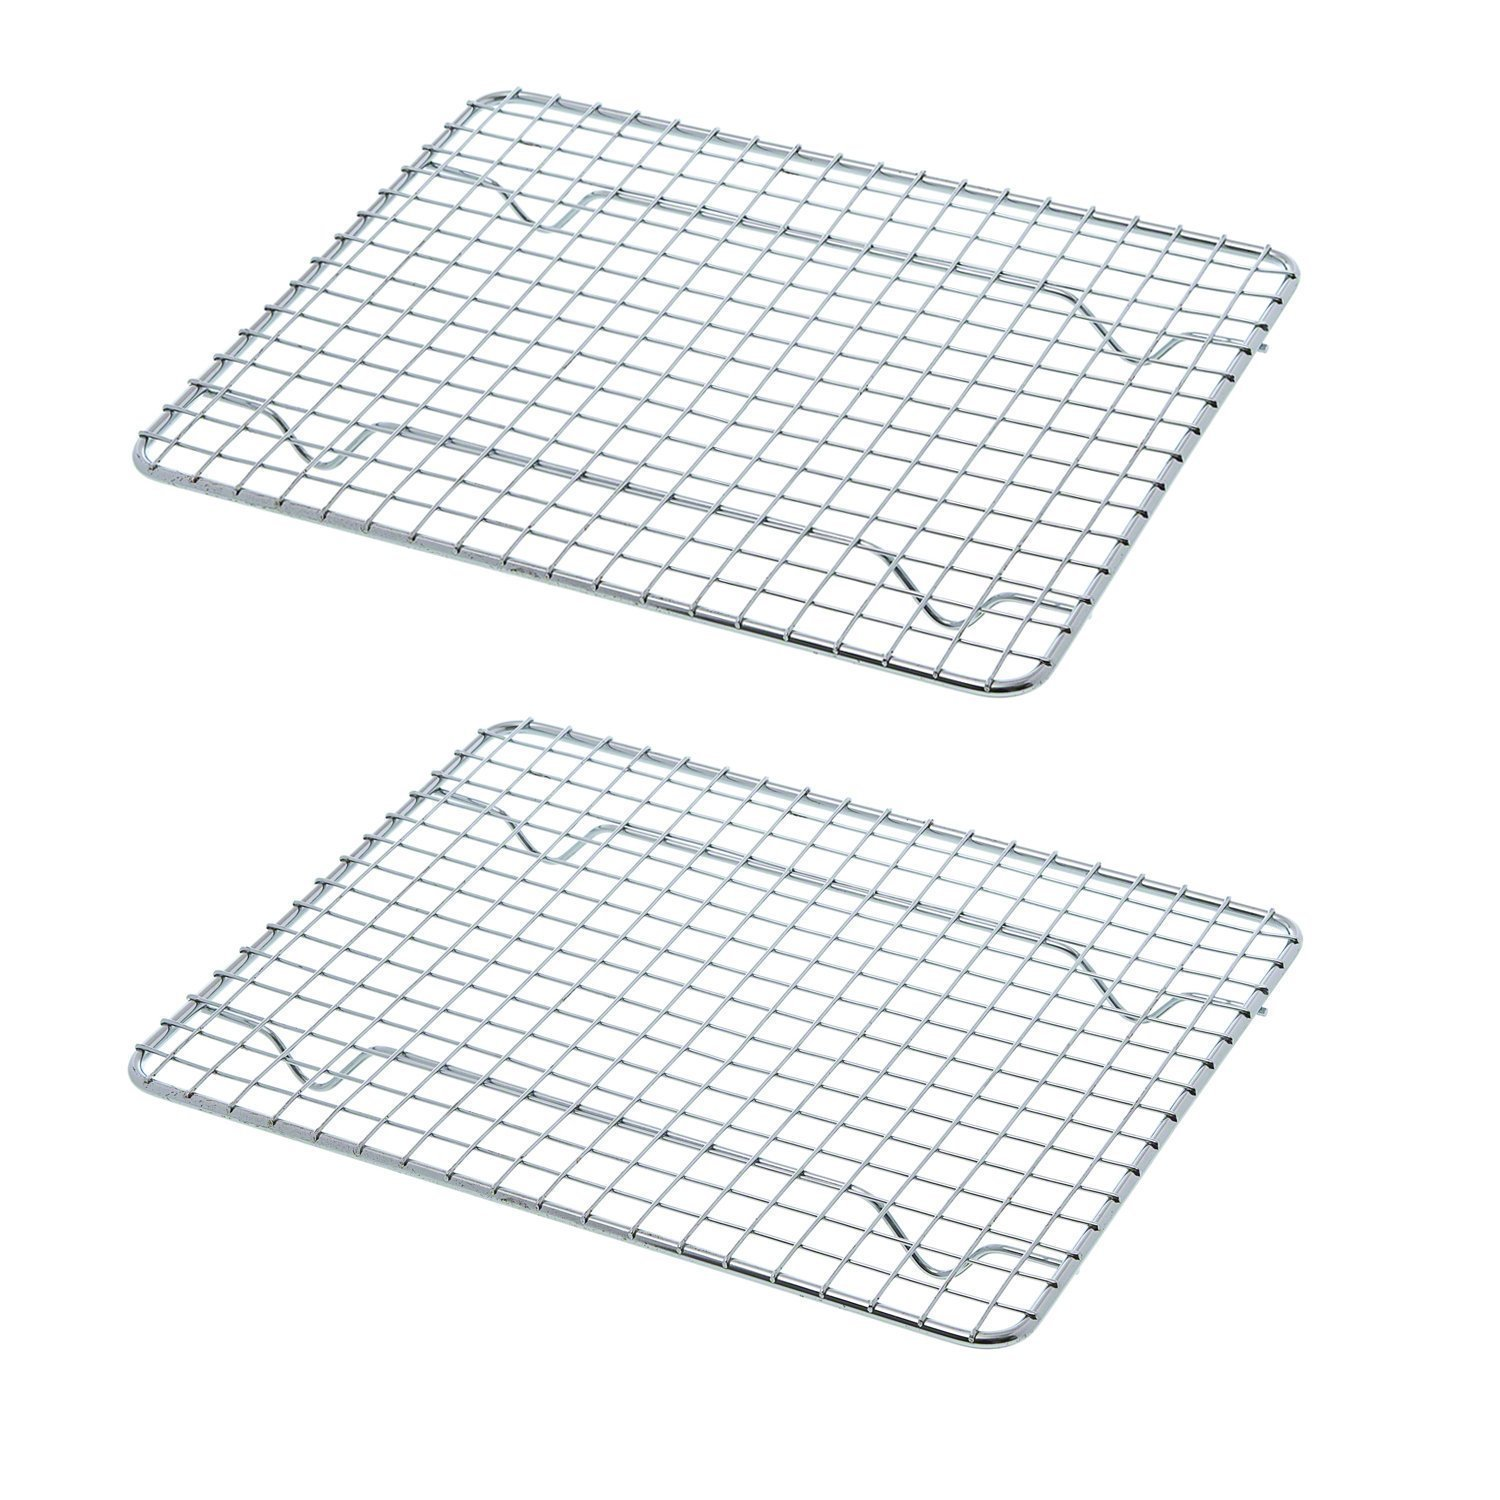 Com Goson Bakeware Baking Cooling Oven Roasting Broiler Rack 8in By 10in Cross Wire Chrome Pack Of 2 Compatible With Various Sheets